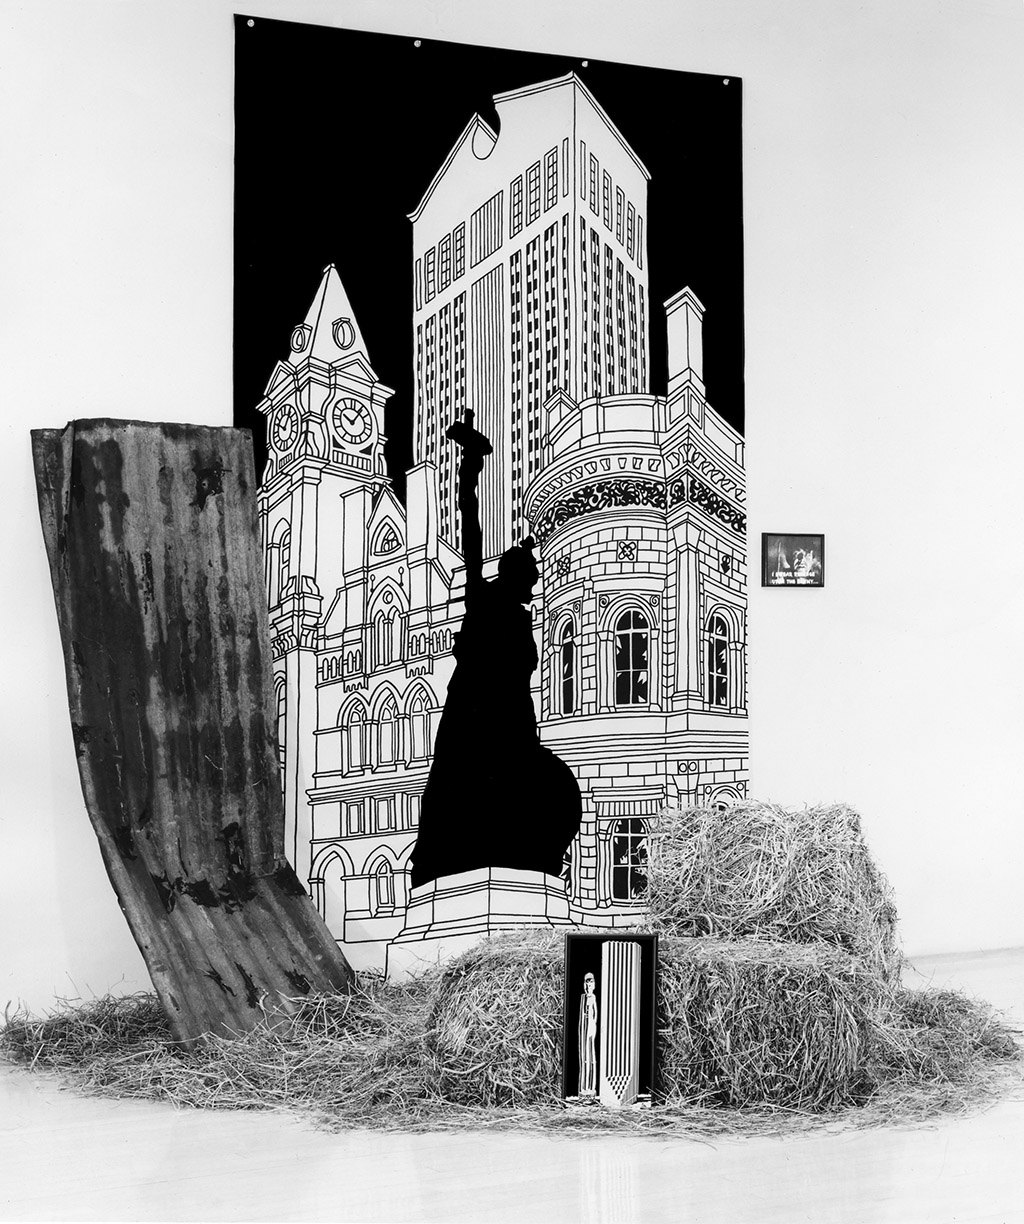 Drawing From Cities of the Dead with Monument to the Living